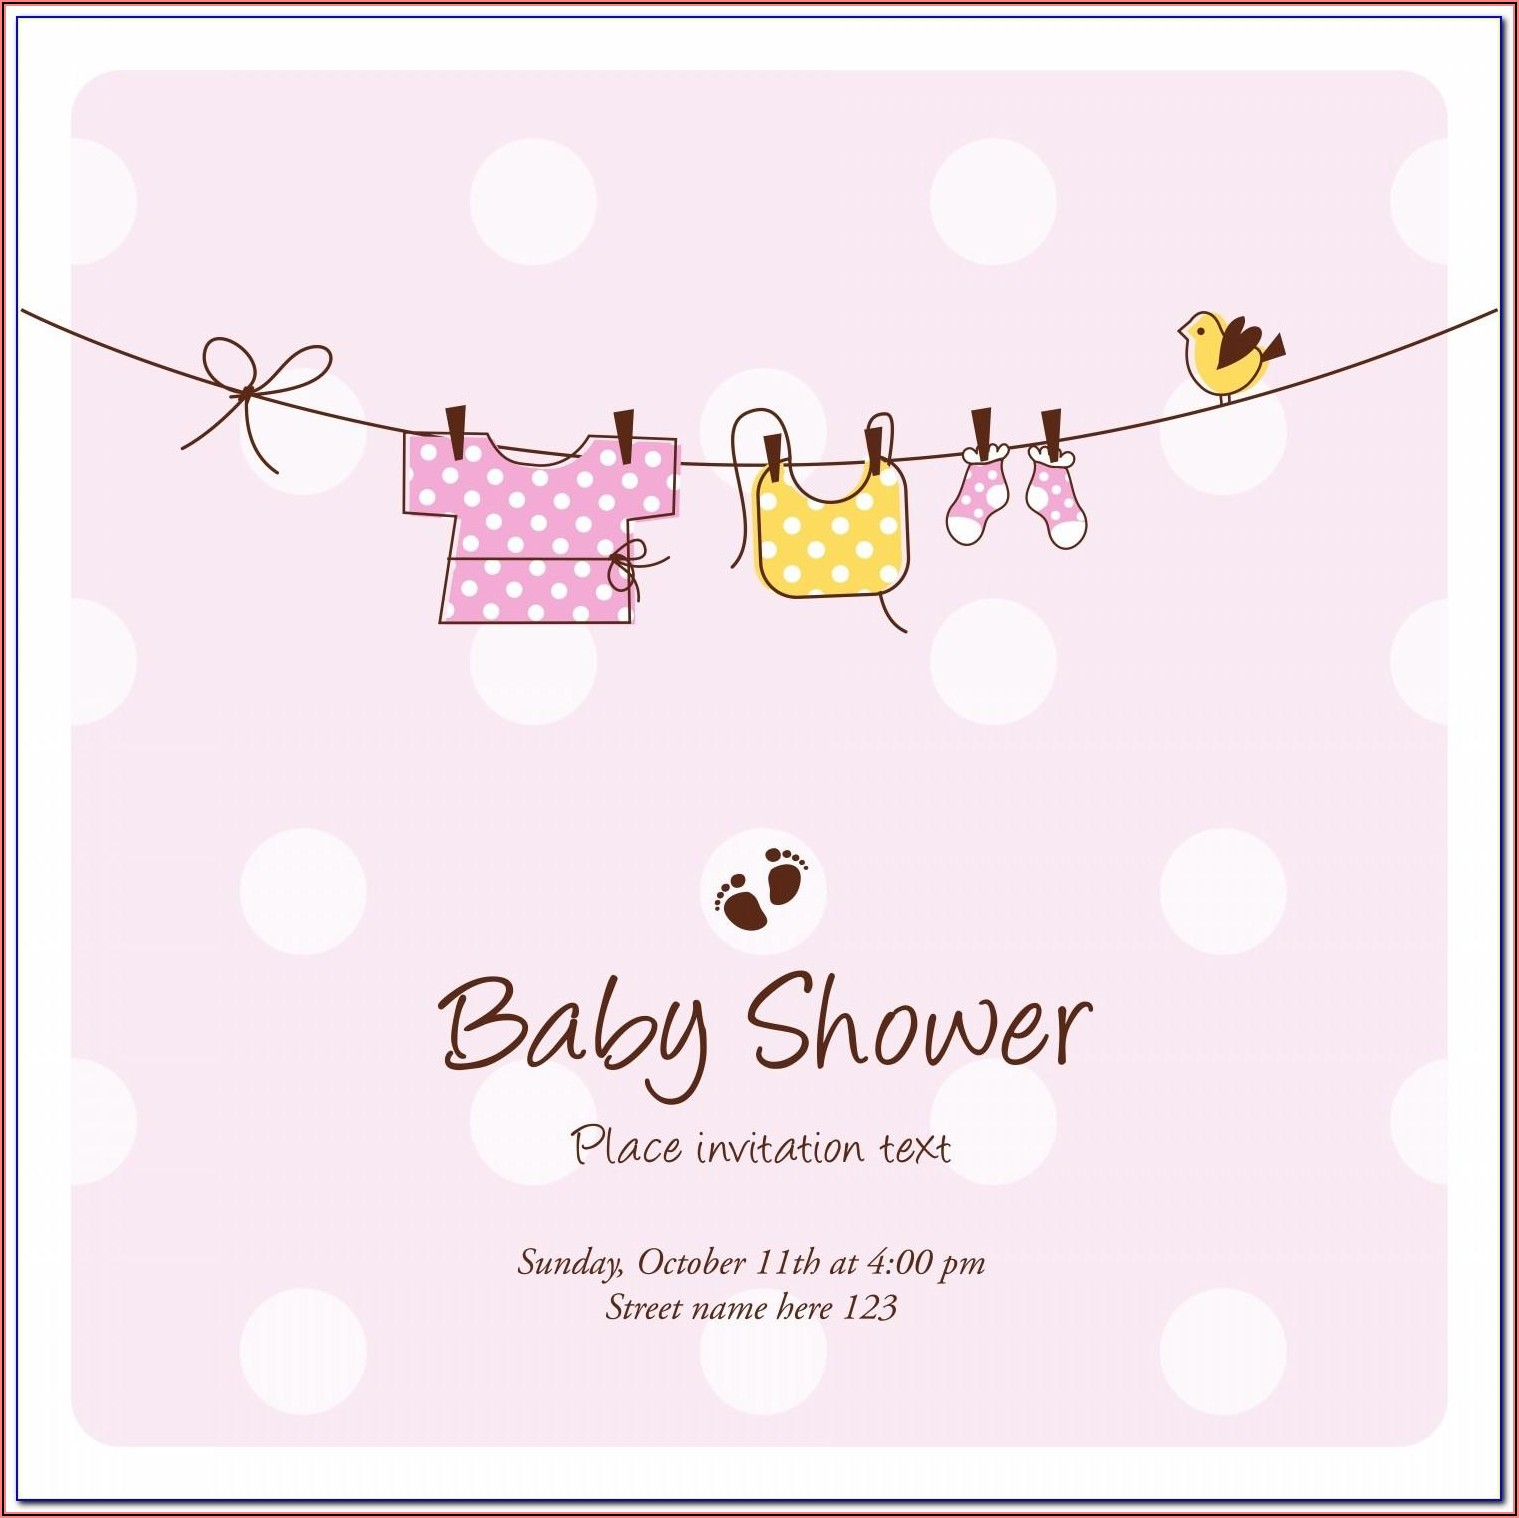 Free Online Invitation Card Design For Baby Shower